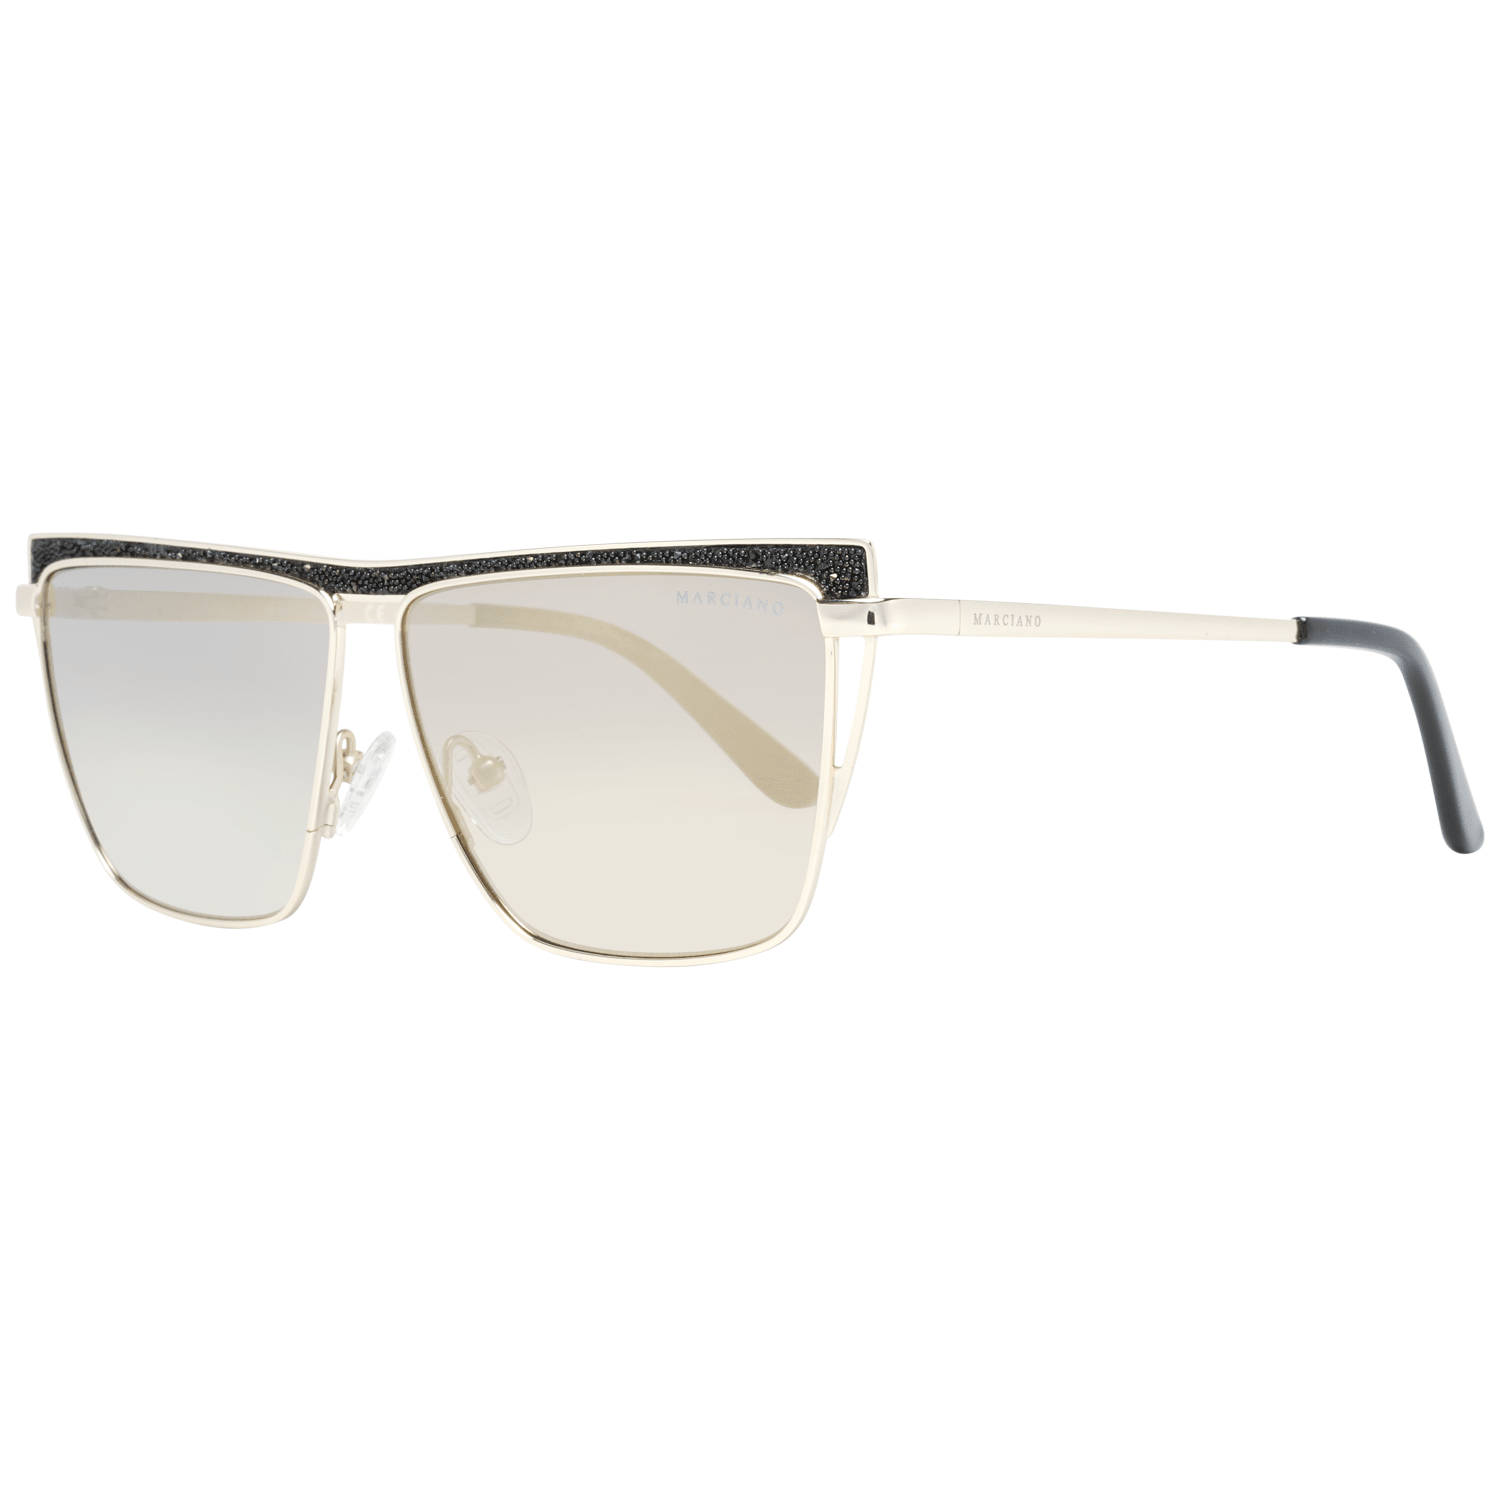 Guess By Marciano Women's Sunglasses Gold GM0797 5732C